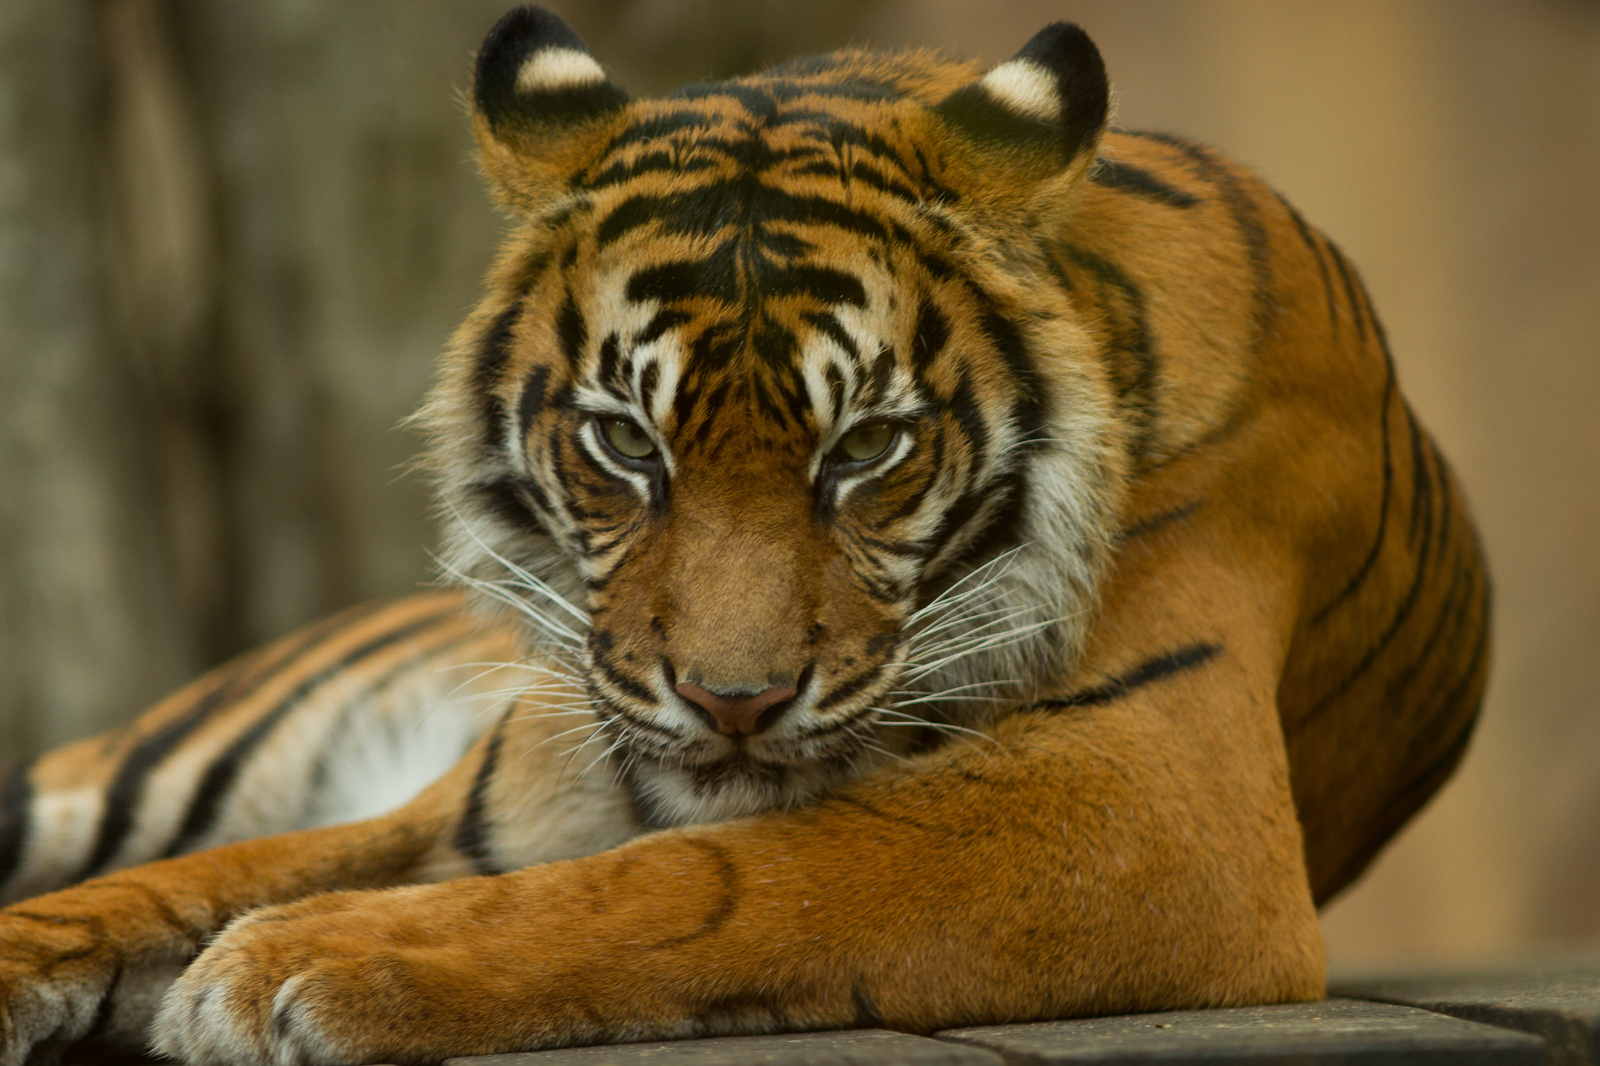 How We're Using an App to Raise Awareness for the Cruelty Behind Tiger Cub Selfies